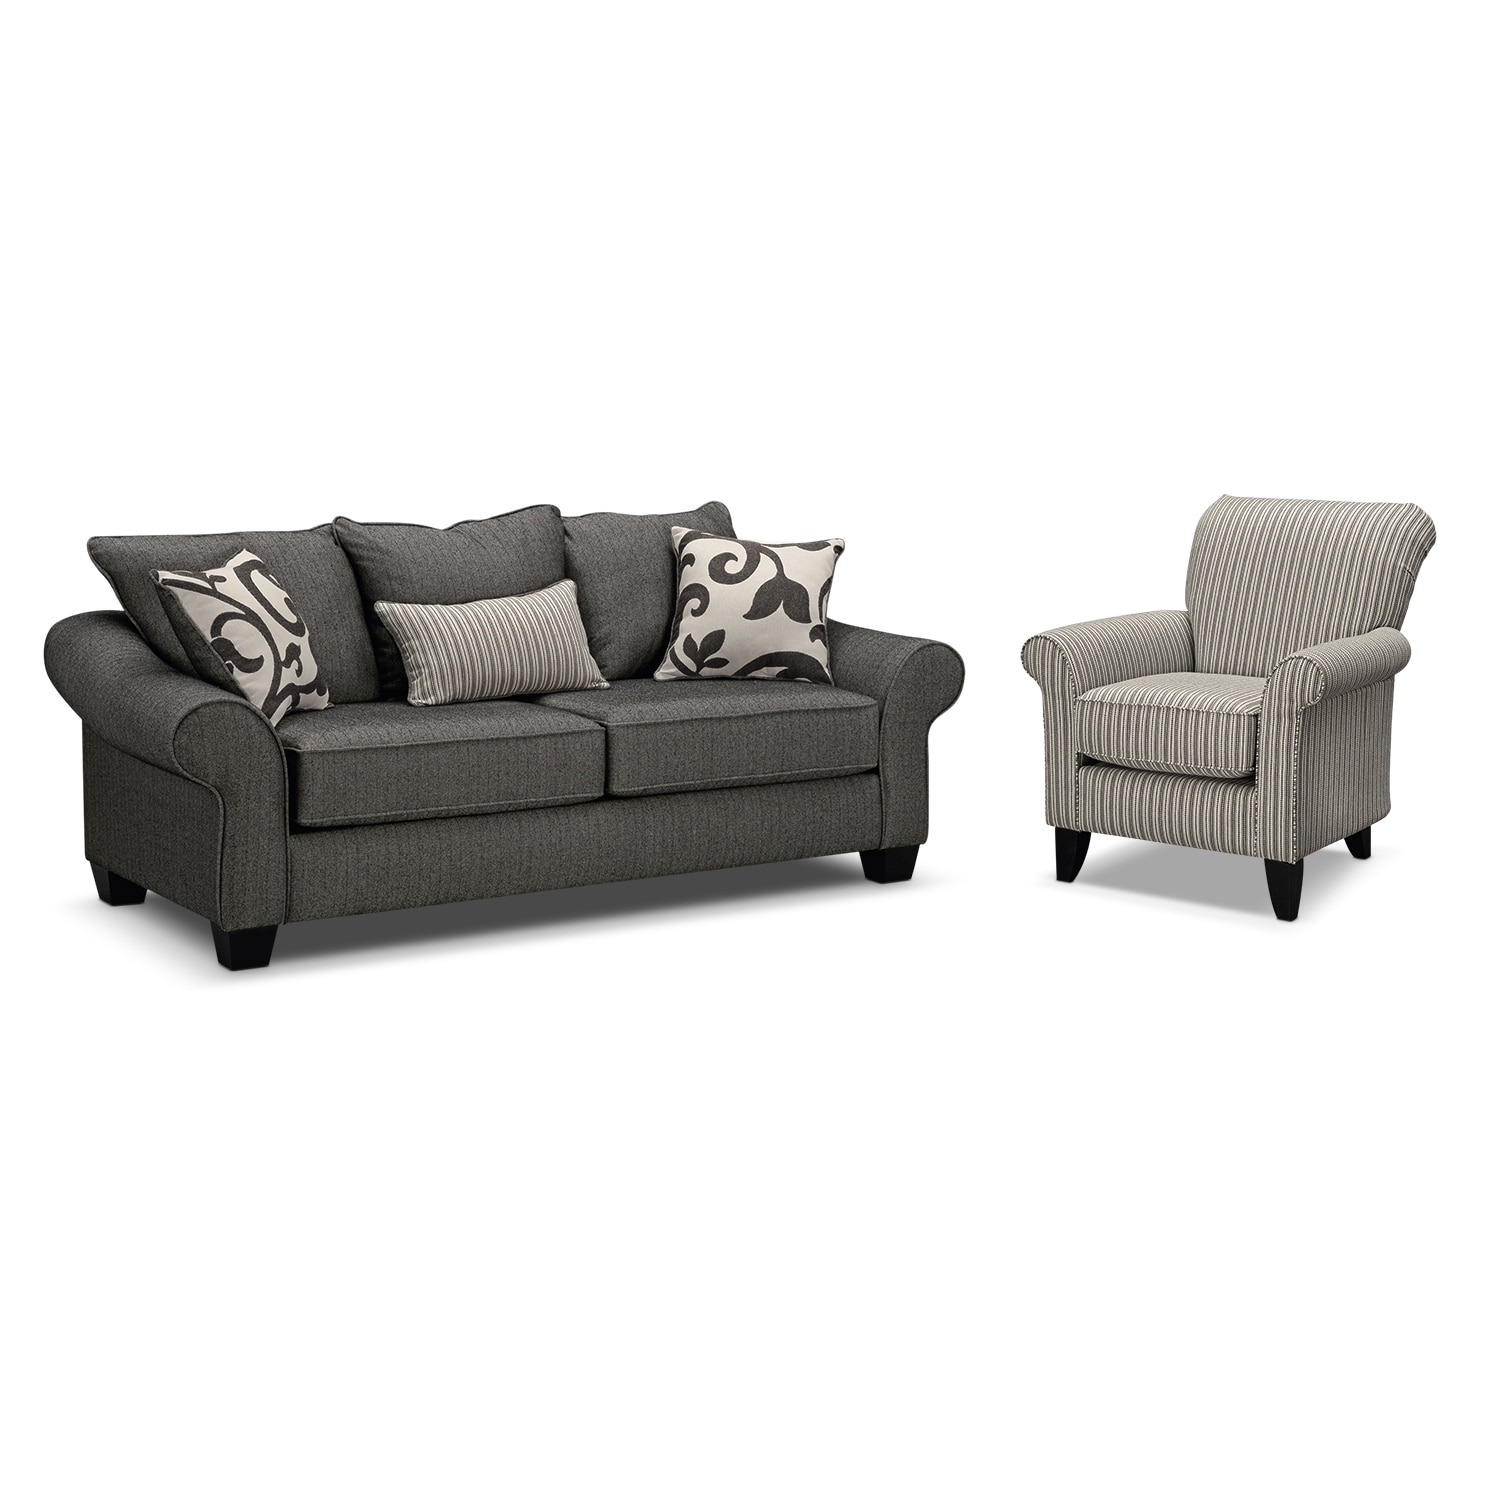 Living Room Furniture   Colette Sofa And Accent Chair Set   Gray